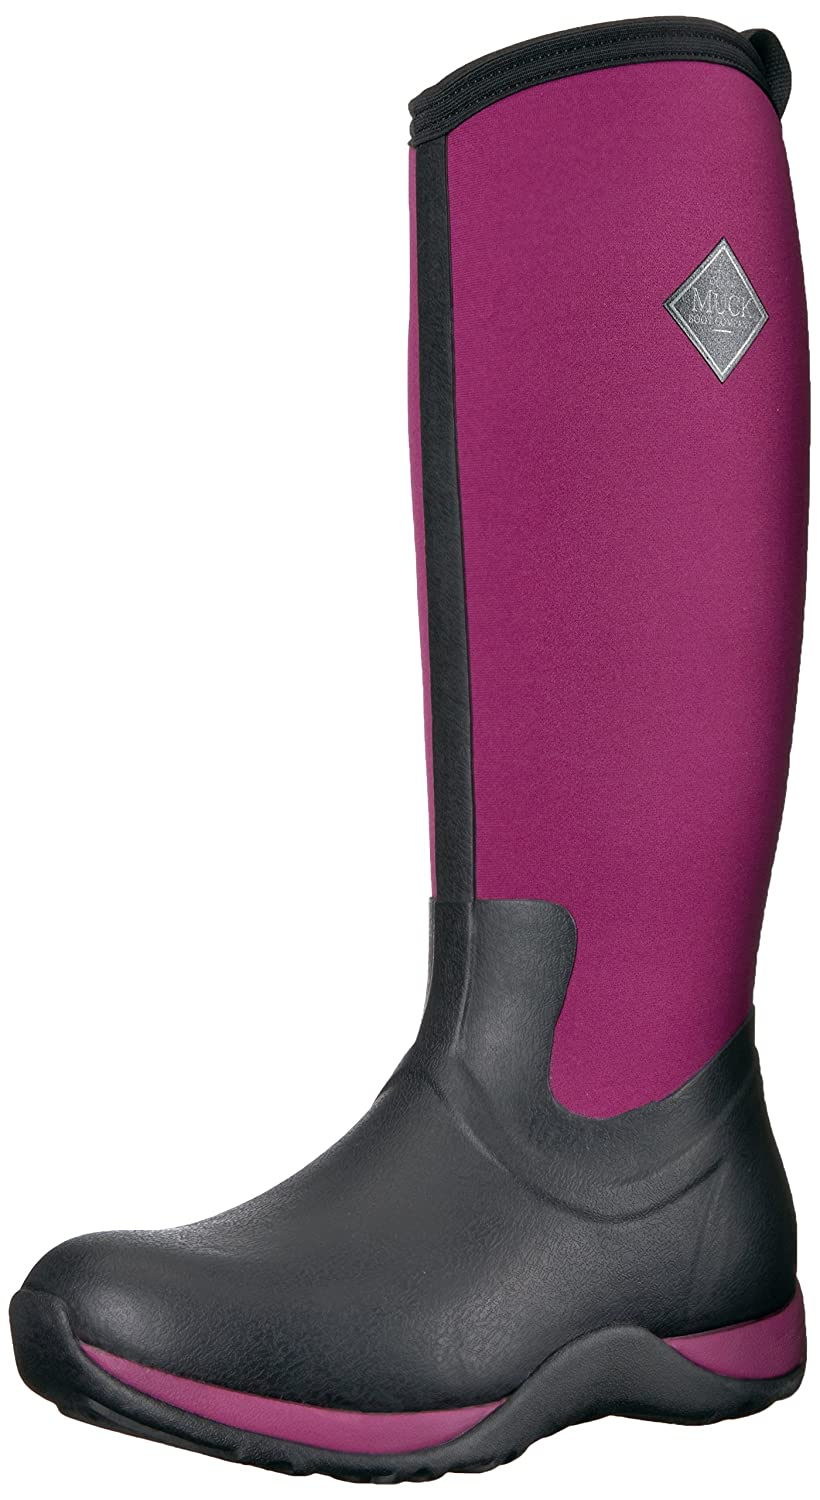 [Muck Boot] レディース Arctic Boot] Adventure Adventure B00BN60YHE レディース 8 B(M) US|Black/Maroon Black/Maroon 8 B(M) US, スラッカン:33b418ee --- sharoshka.org